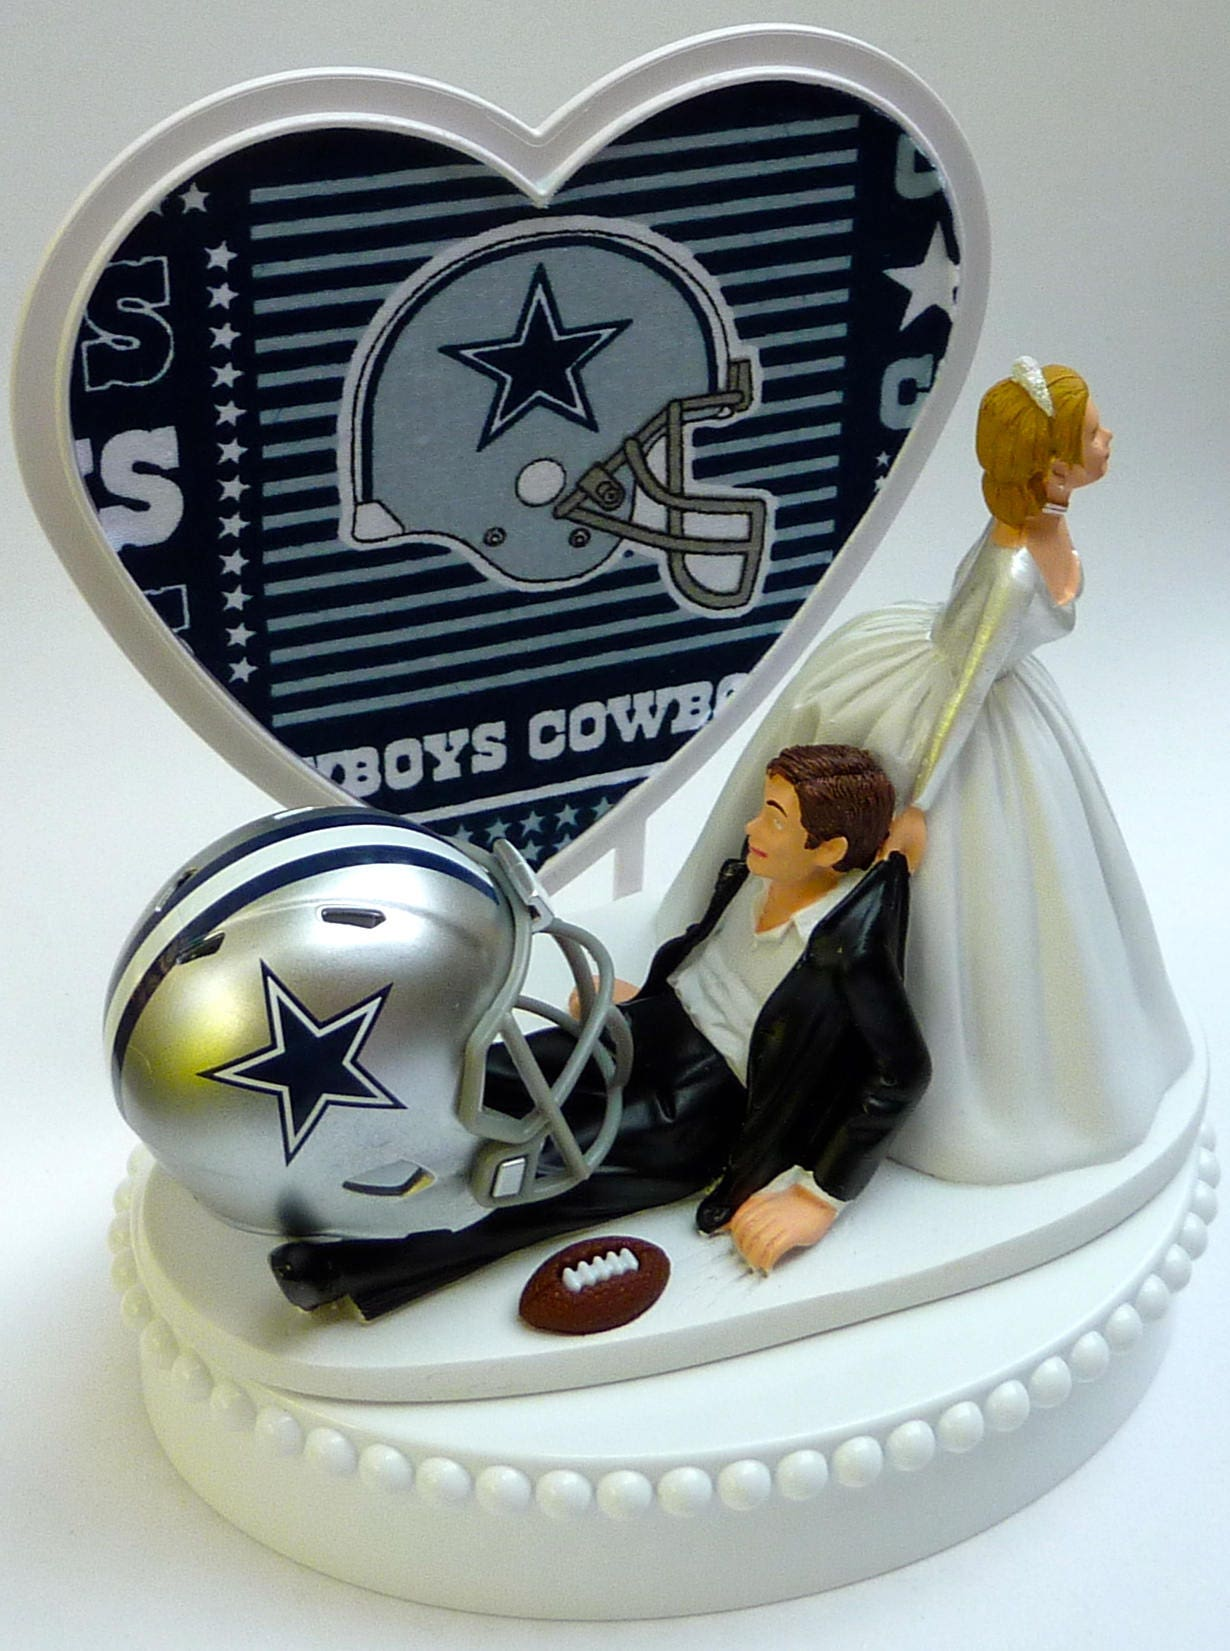 Wedding Cake Topper Dallas Cowboys Football Themed W